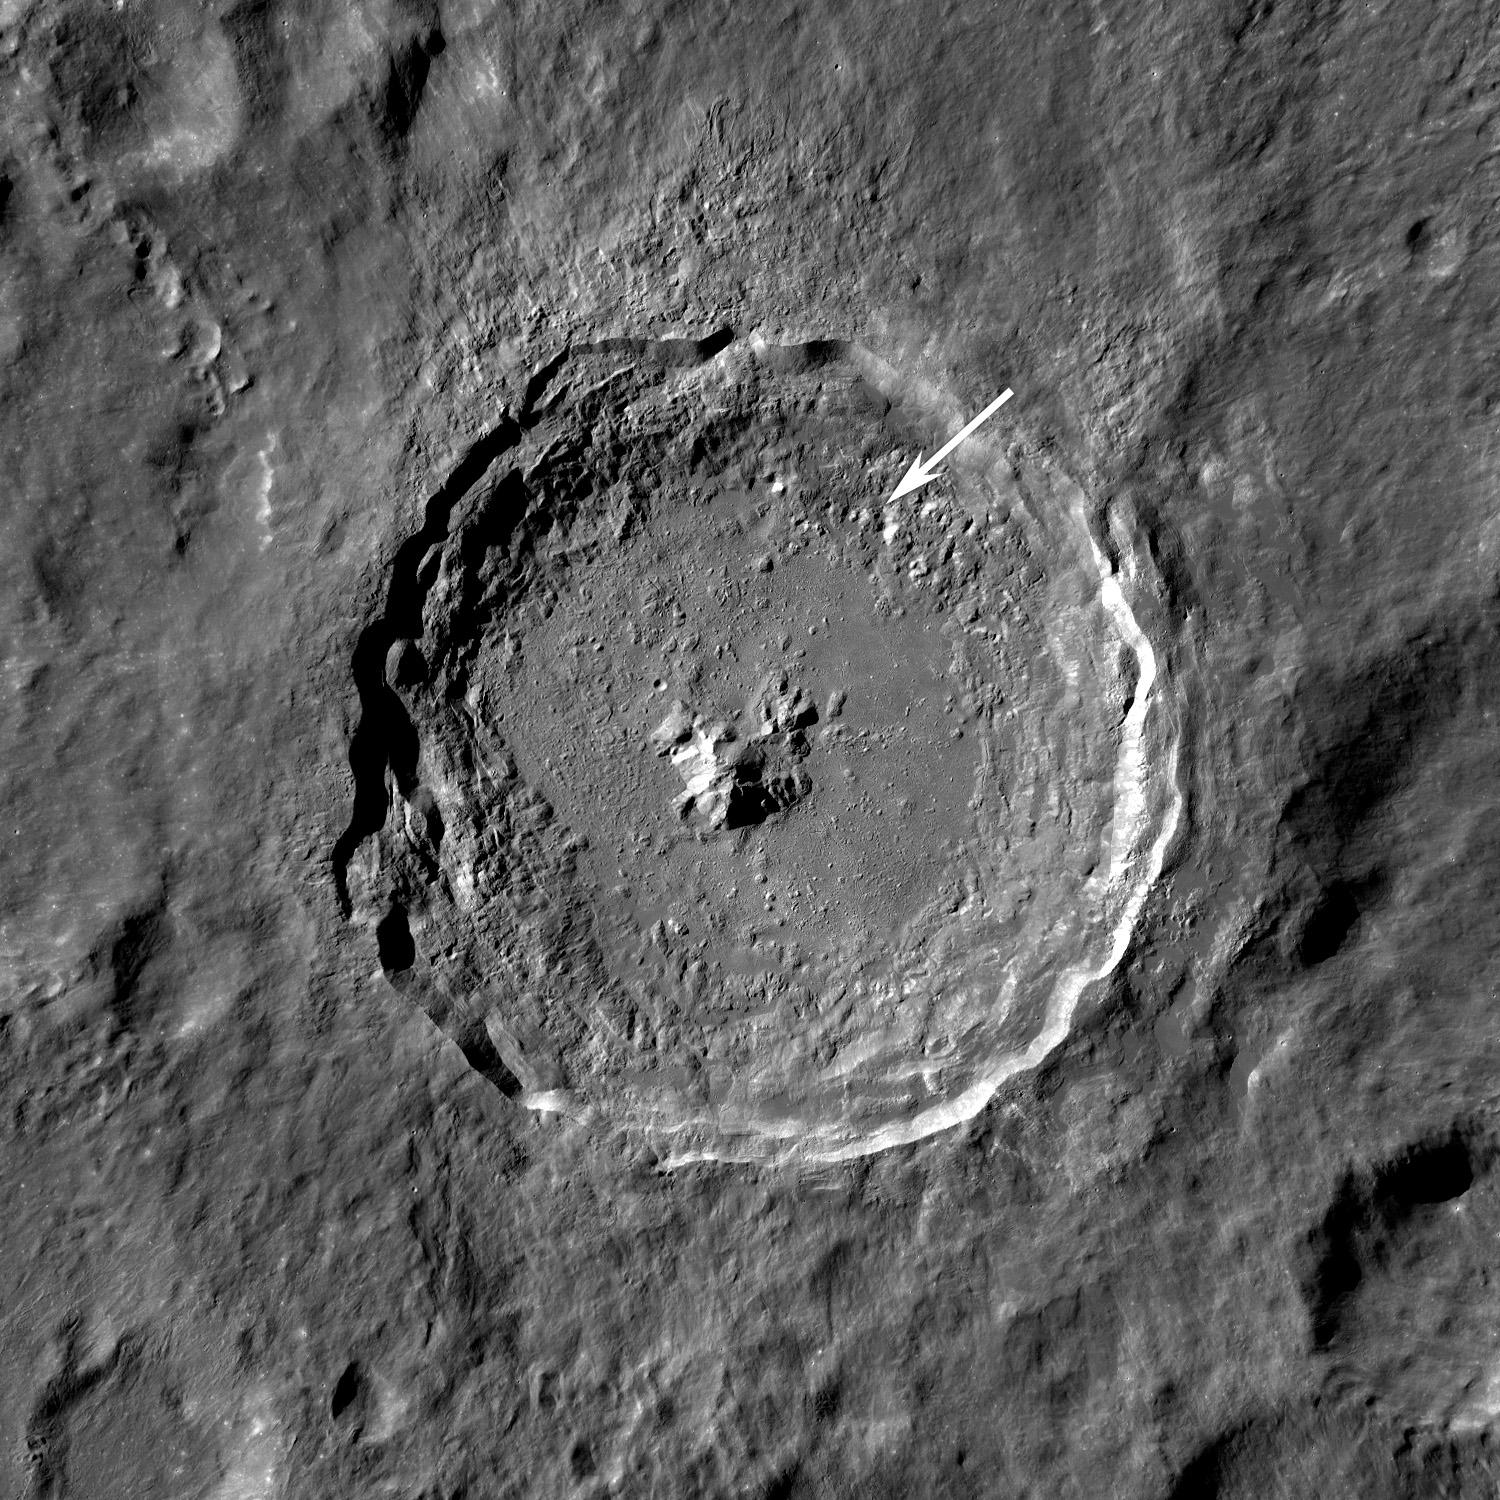 impact craters nasa - photo #13